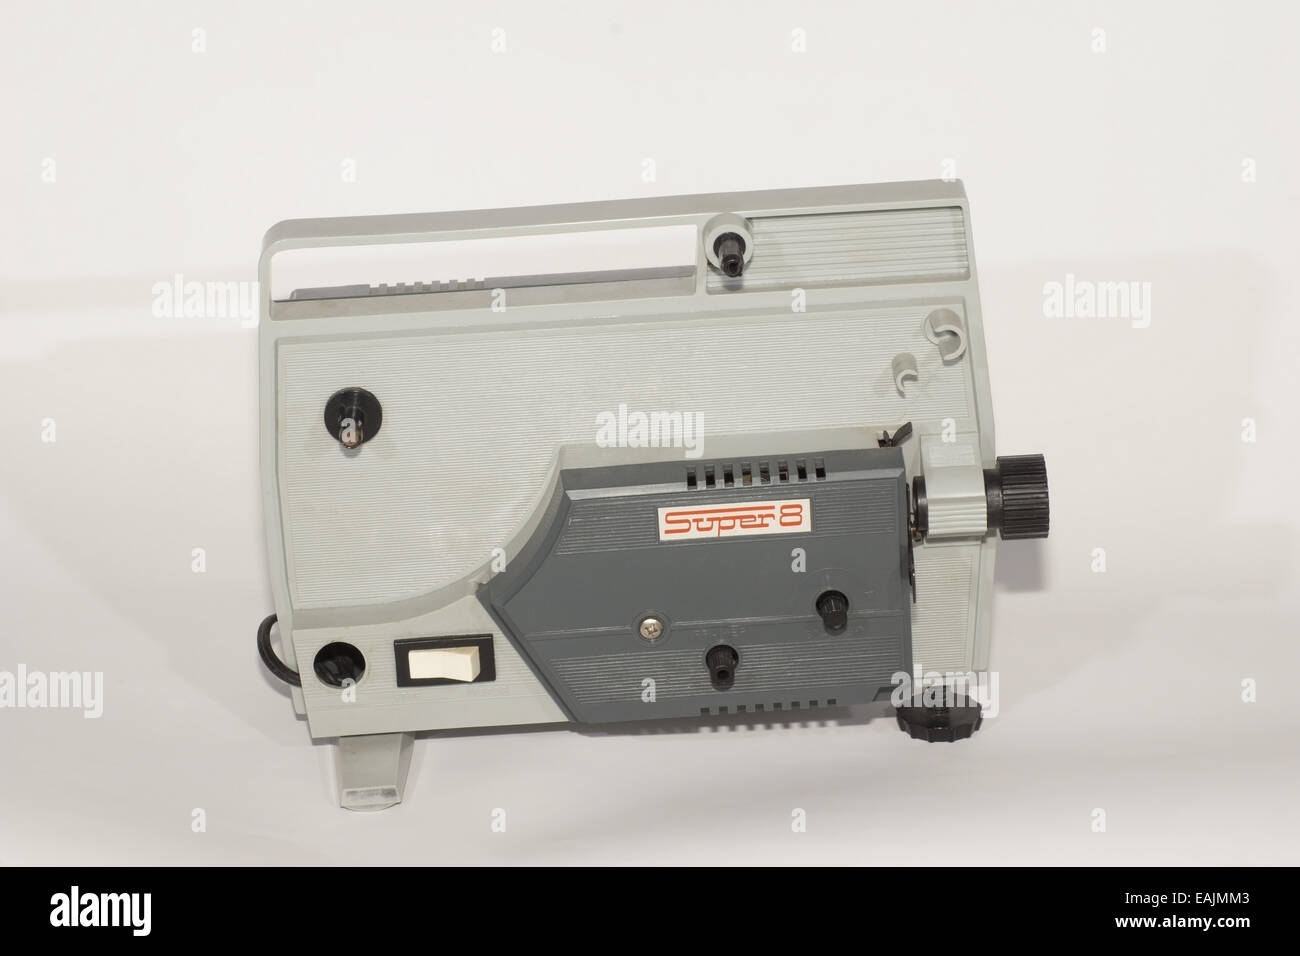 A Gioca Royal Milano Super 8mm automatic cine projector - Stock Image